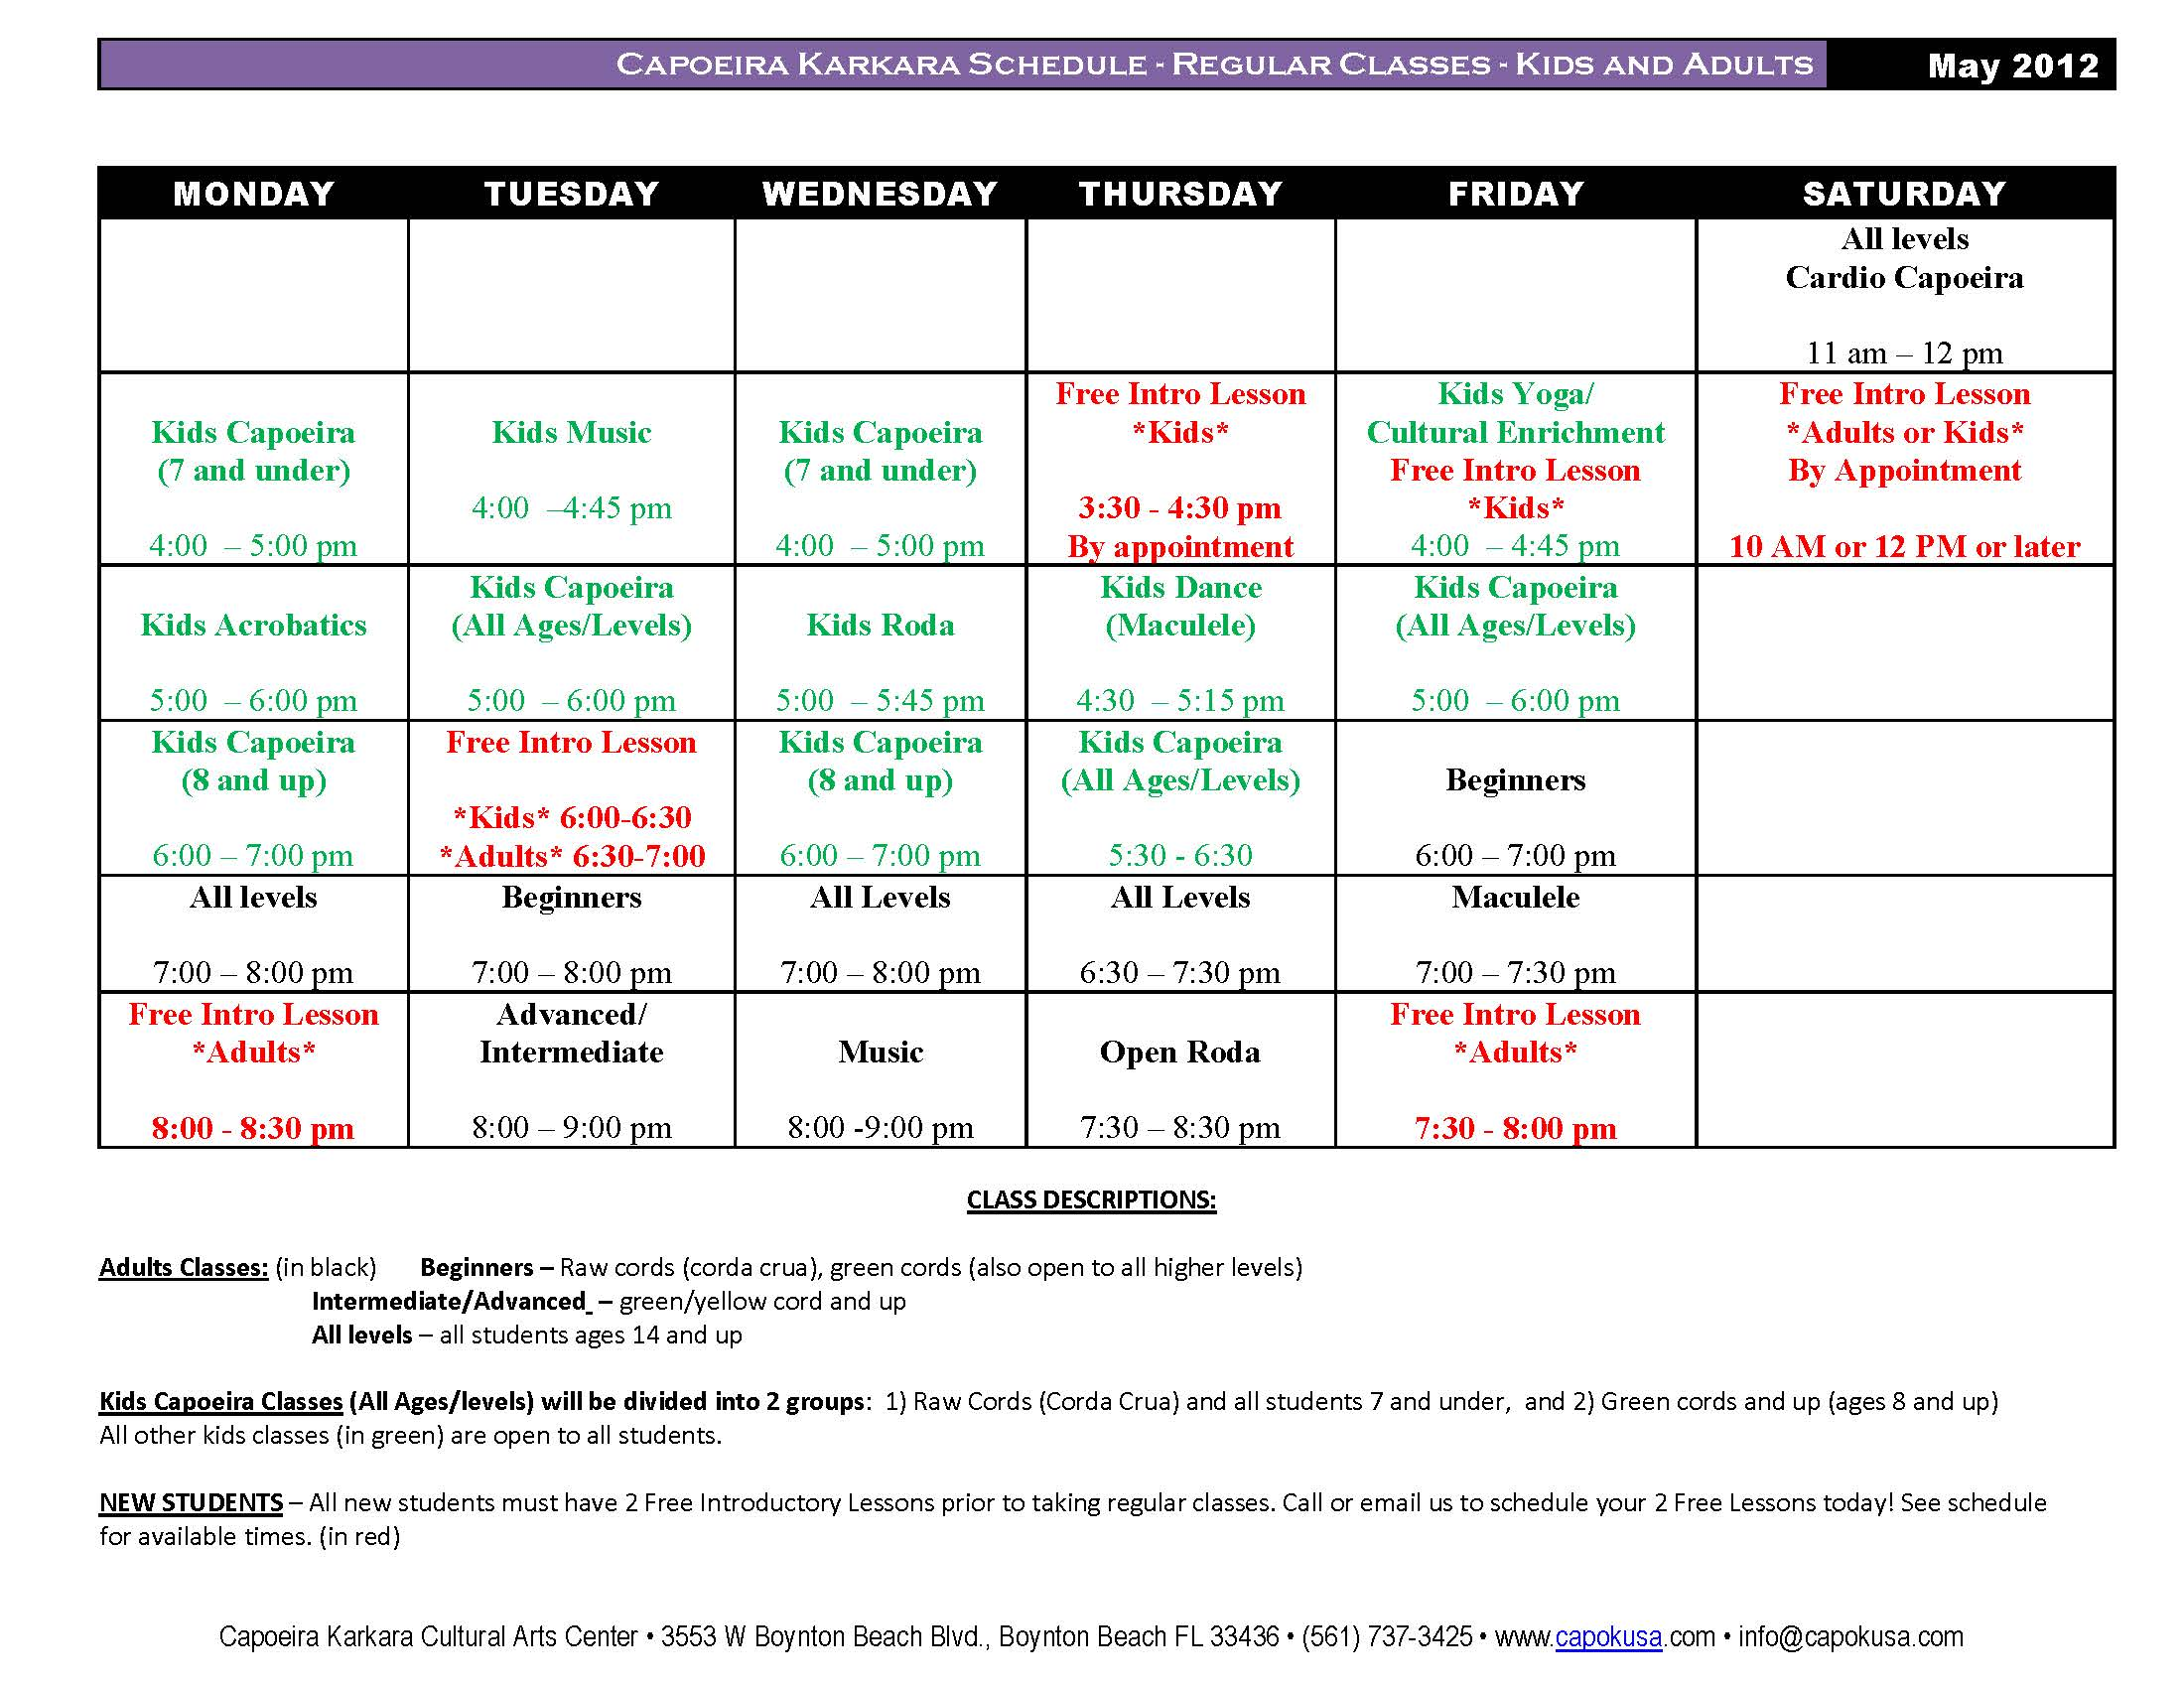 Class Schedule Kids and Adults Classes NEW AS OF 5/7/12